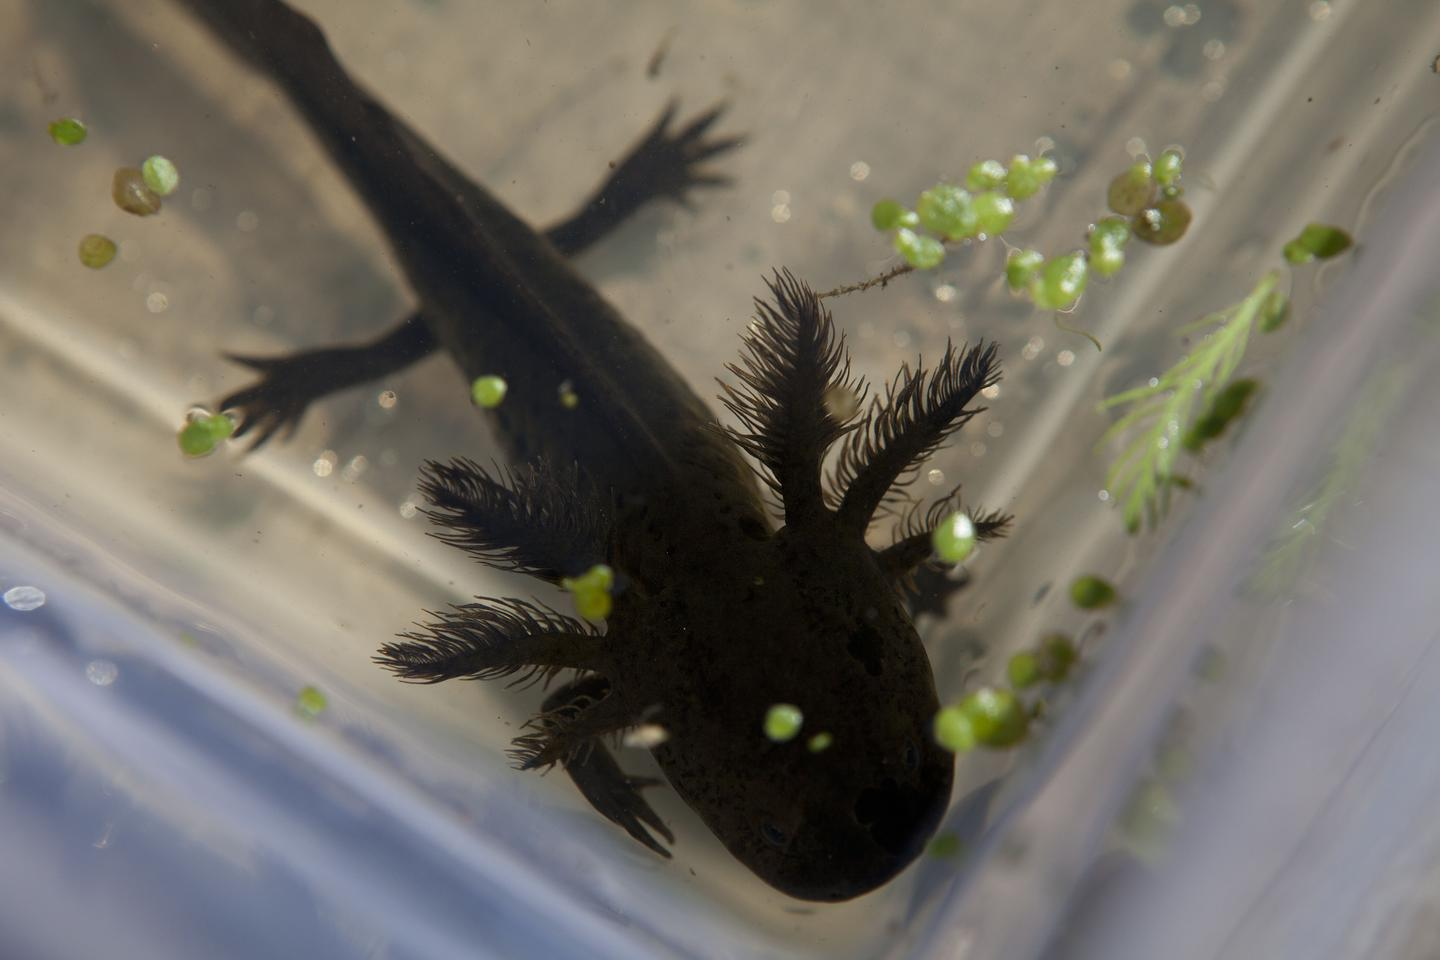 The Axolotl: Our Great Hope for Human Regeneration?